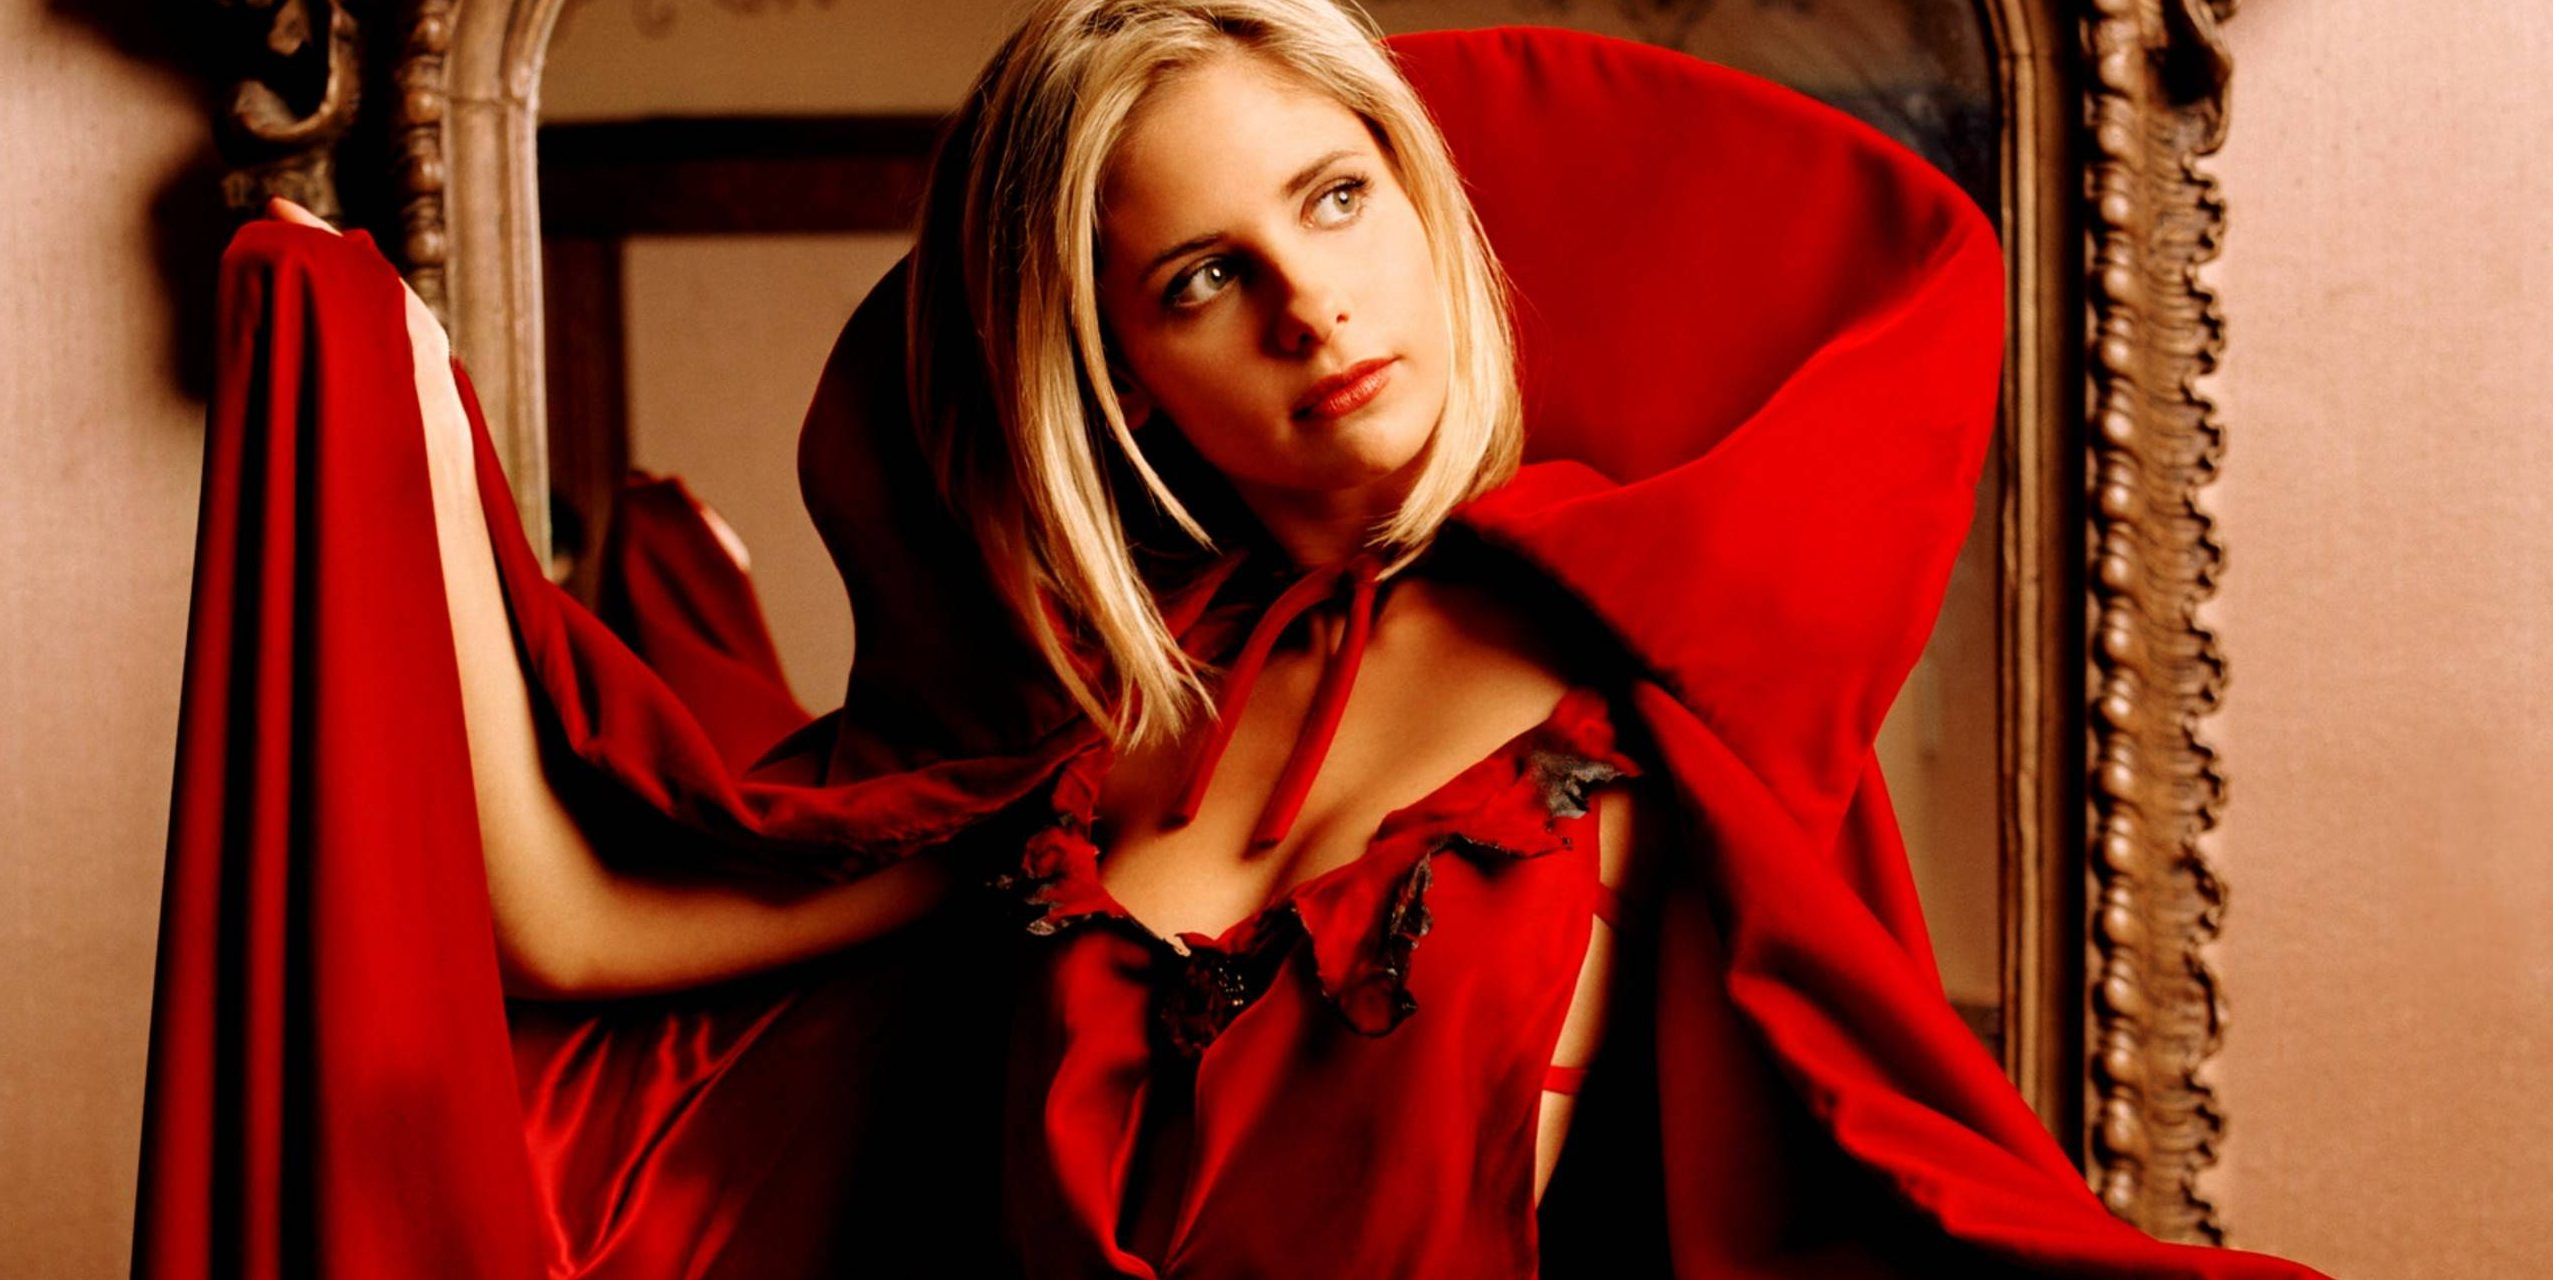 how well do you know buffy summers, the vampire slayer? | thequiz